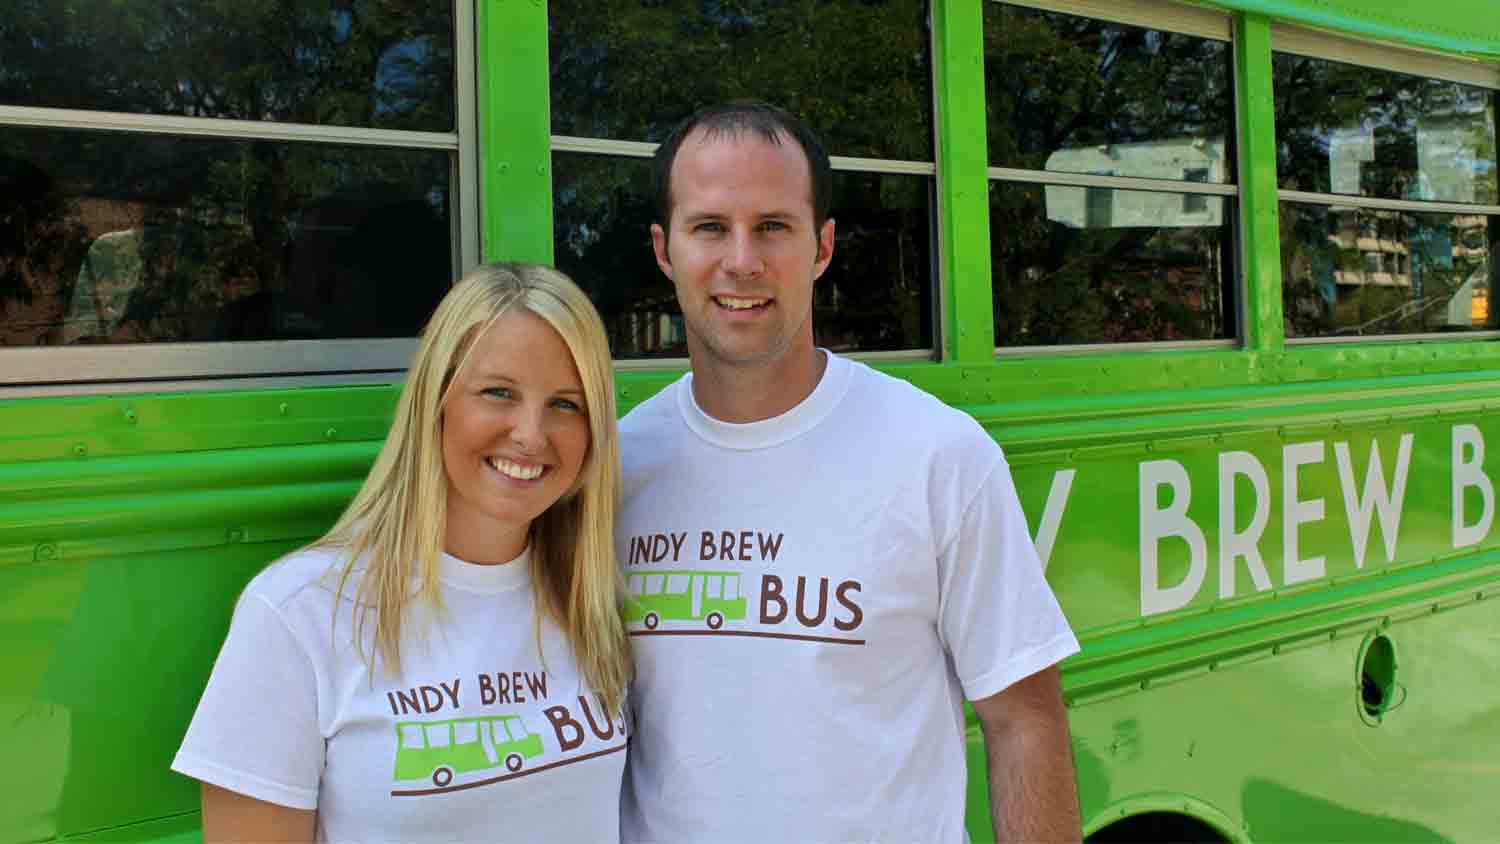 Indy Brew Bus 2